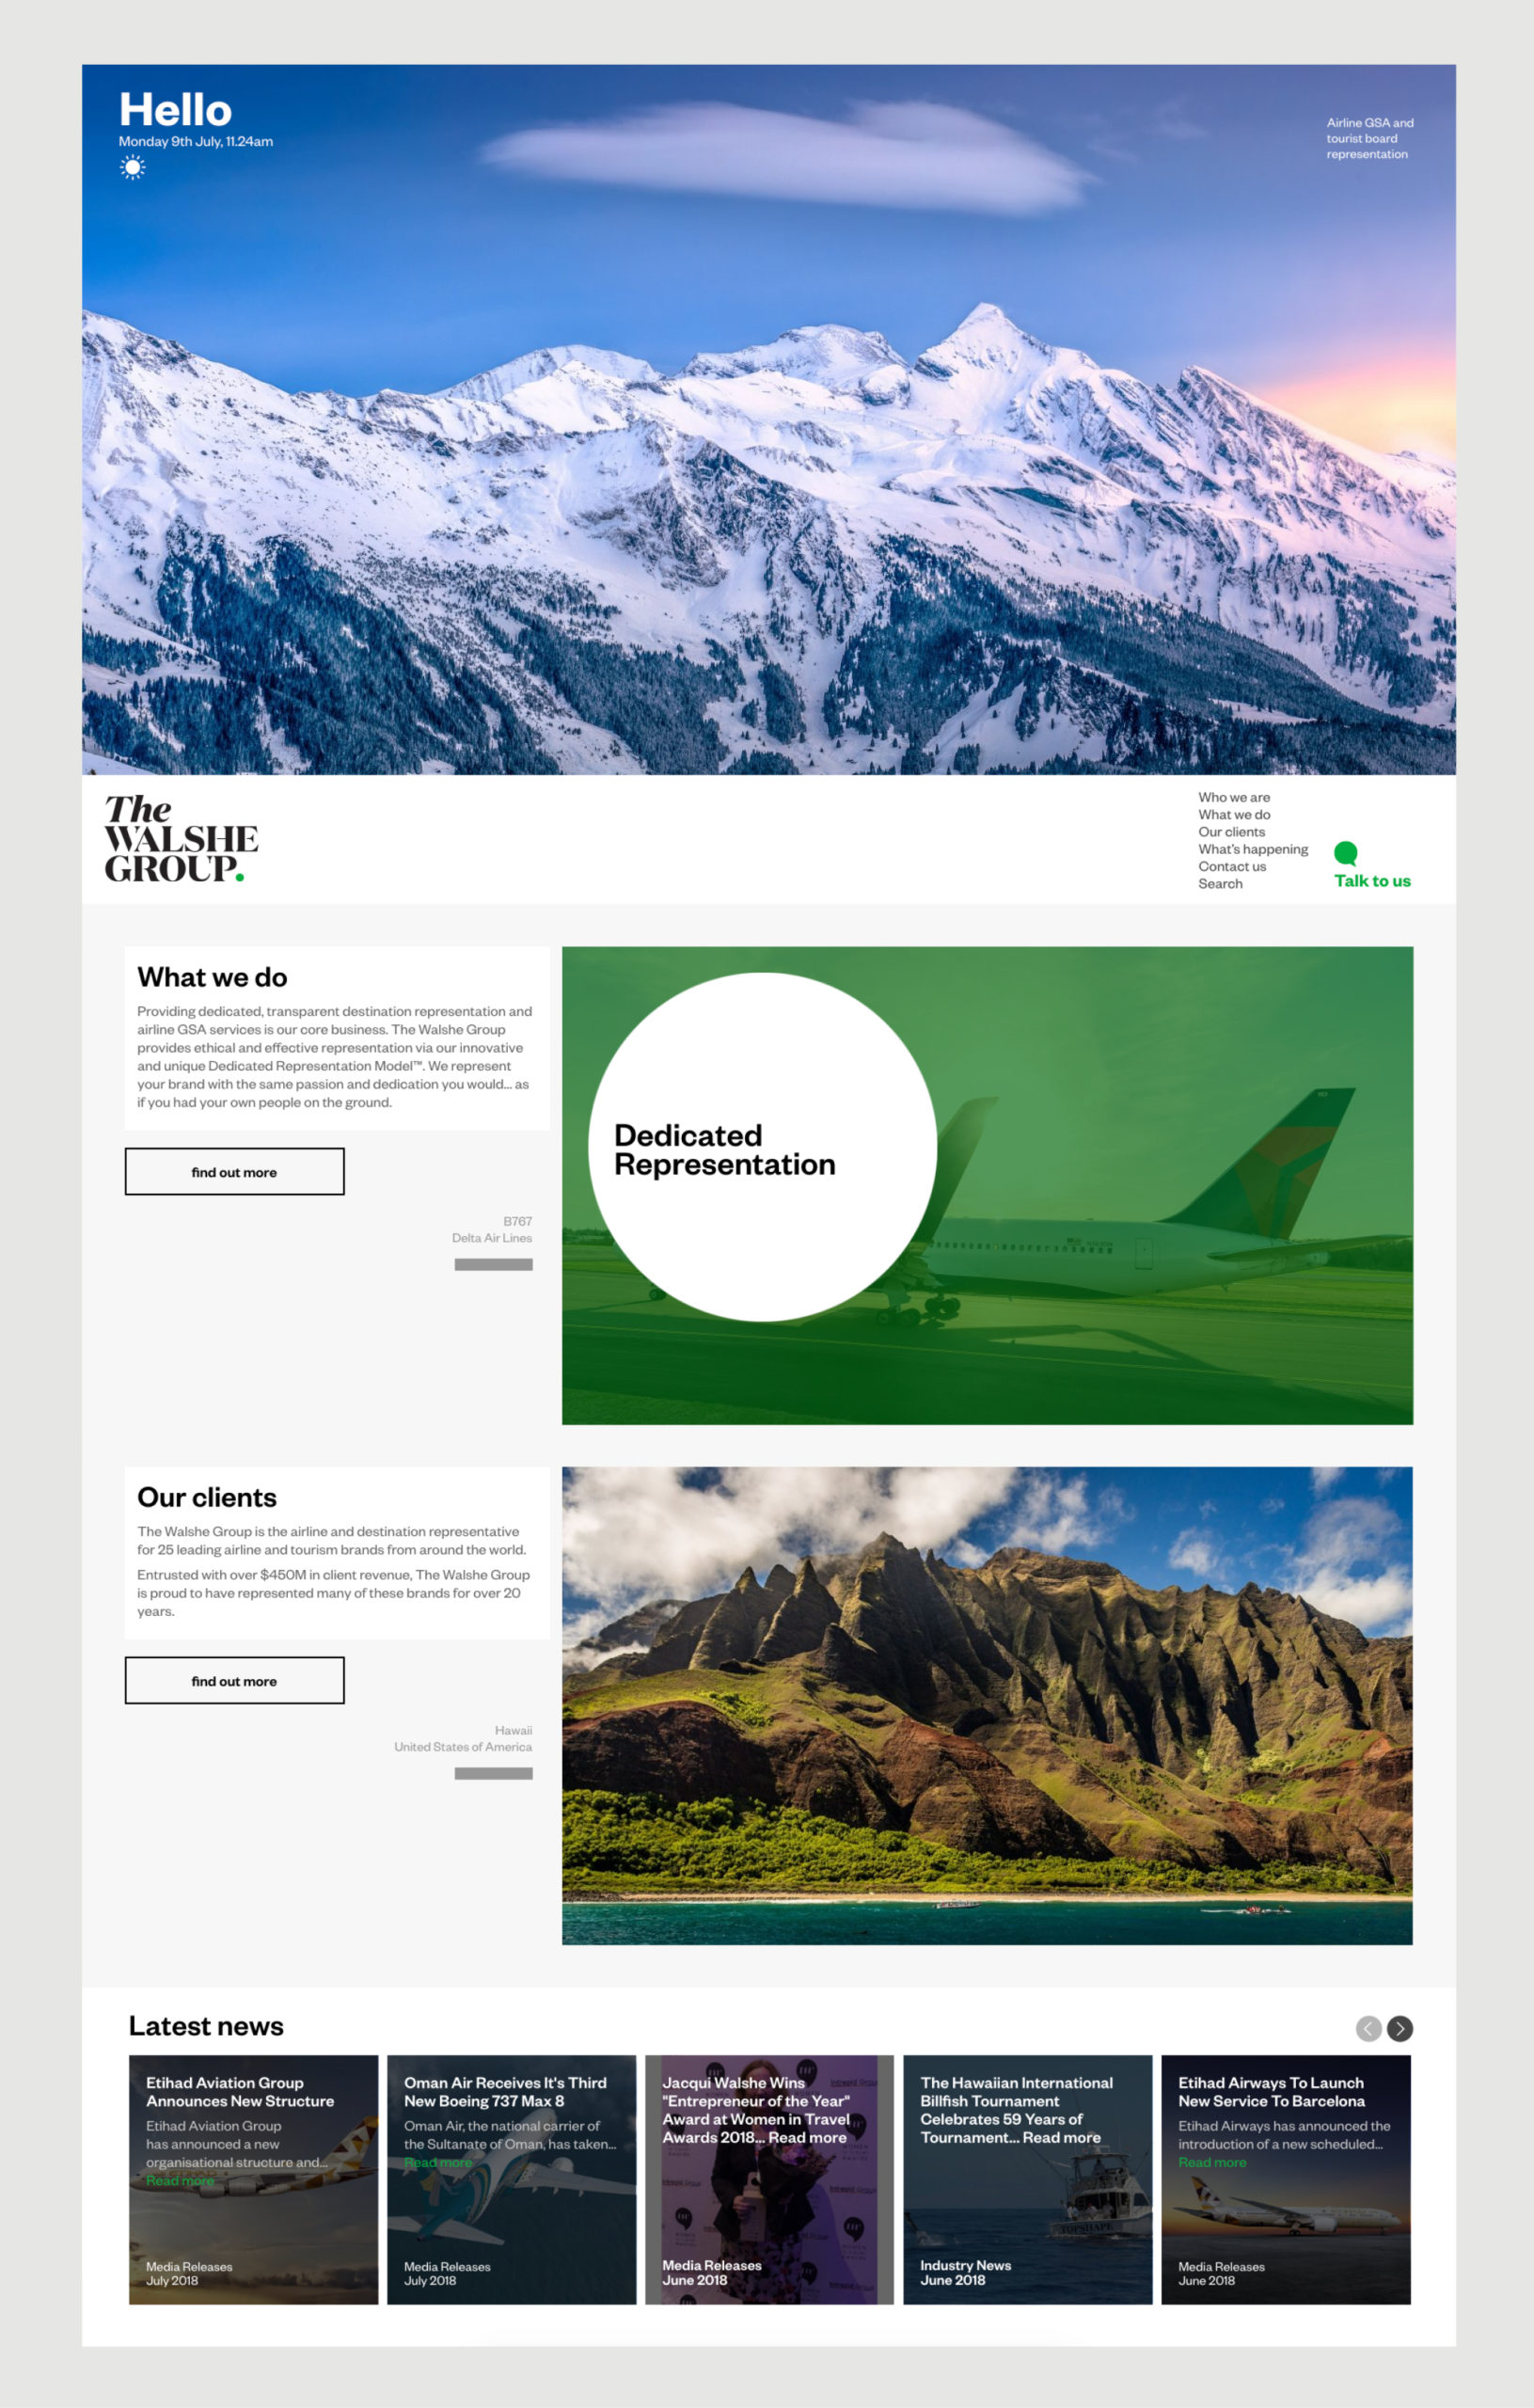 The Walshe Group Website Homepage – features image of Snowy Mountains and Greeting message